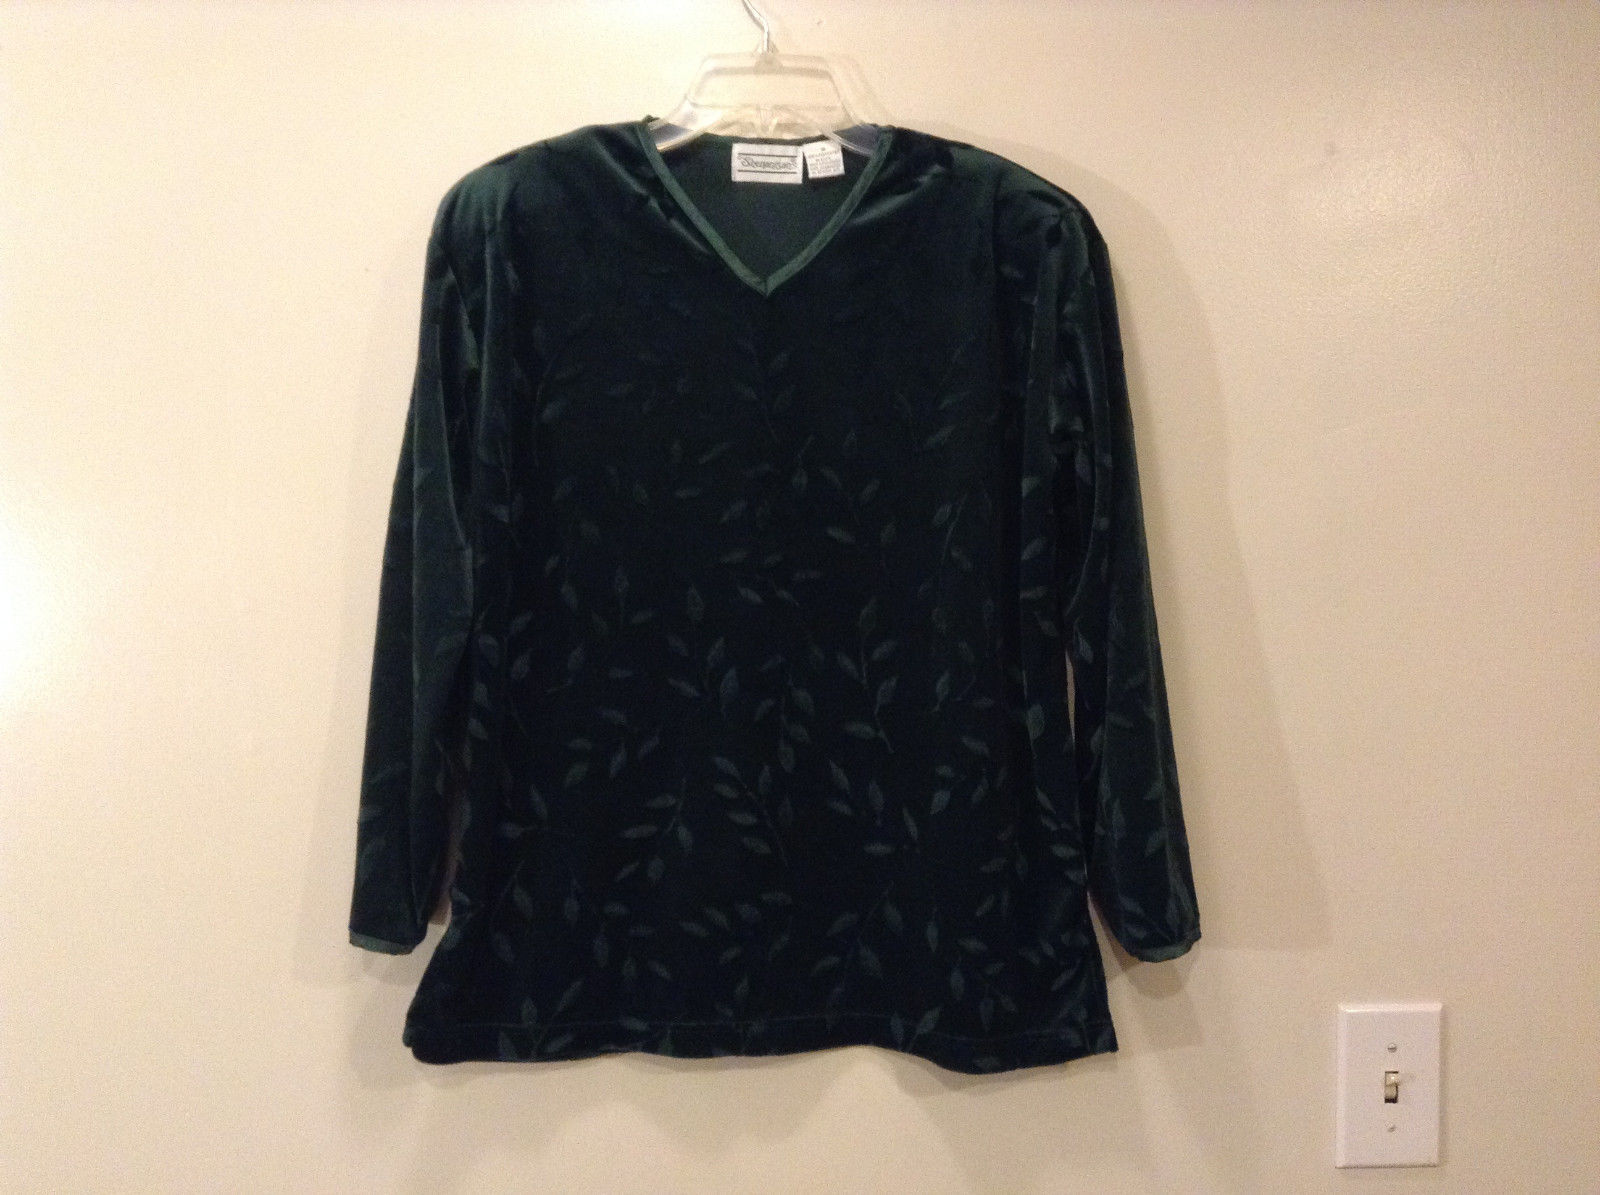 Shenanigans Women's Size S Pullover Shirt Top Dark Emerald Green Burnout Velvet